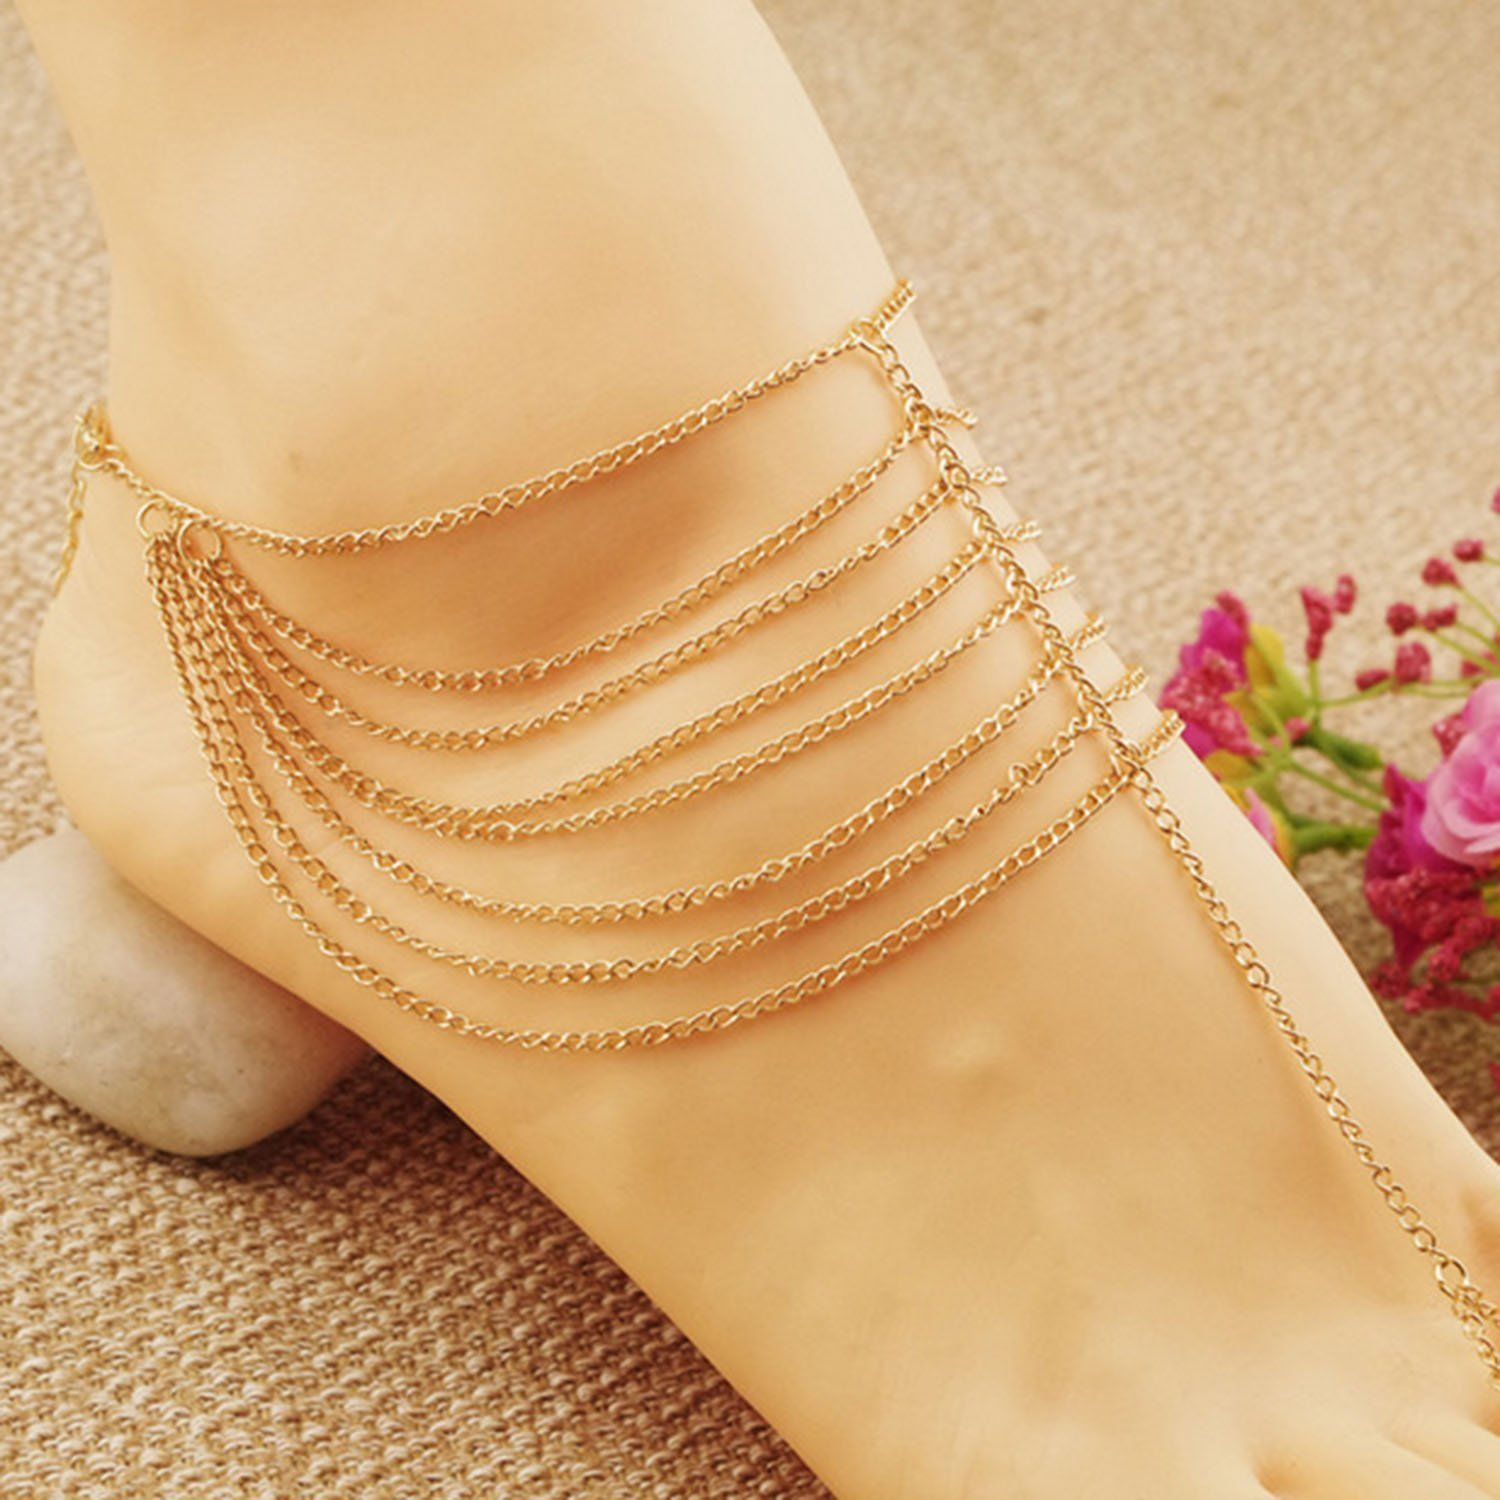 Aukmla fashion ankle bracelets for women and girls gold ueueue check